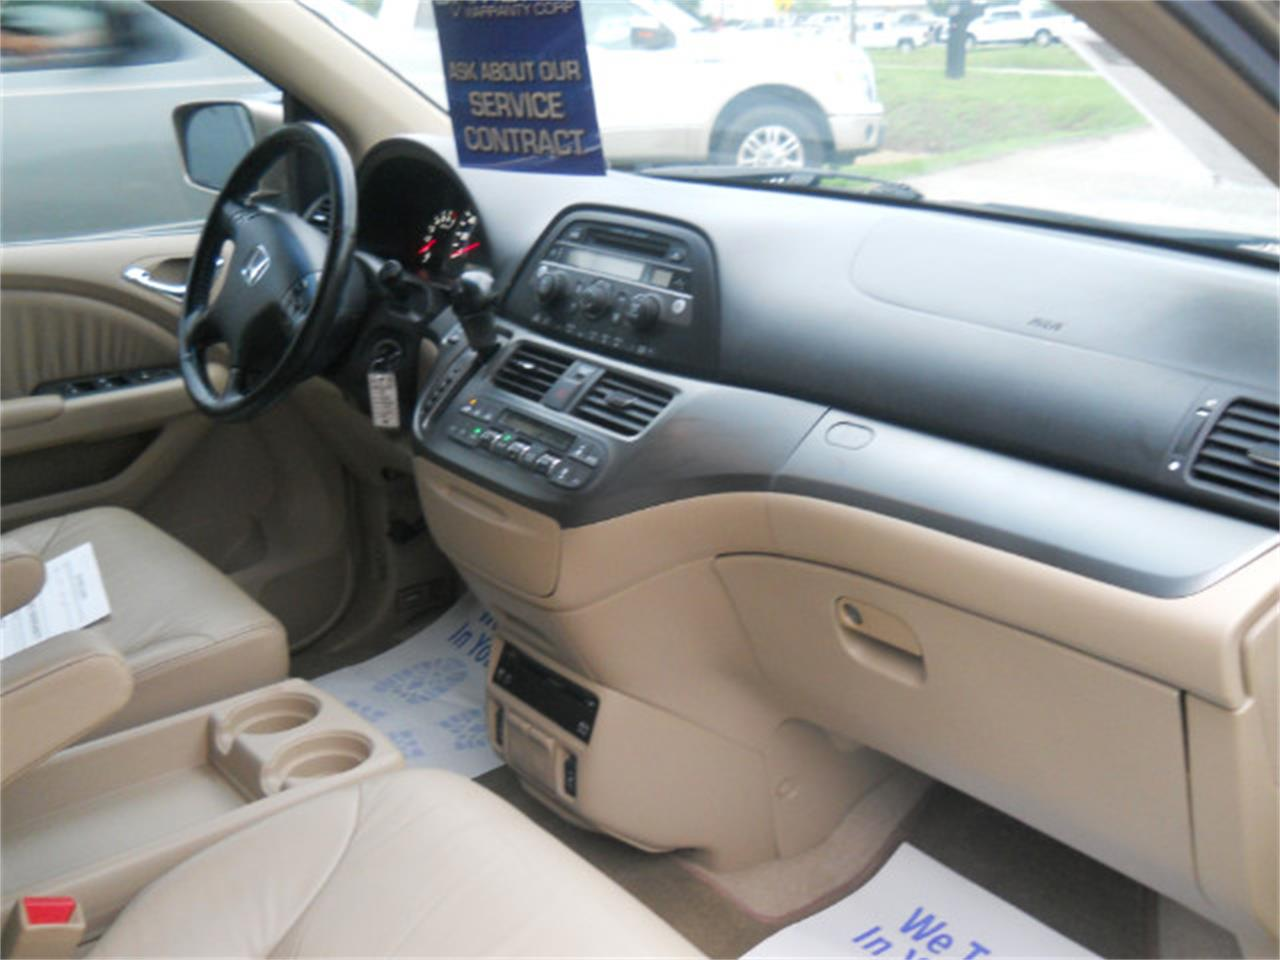 Large Picture of '06 Honda Odyssey located in North Carolina - $7,450.00 - L5SG